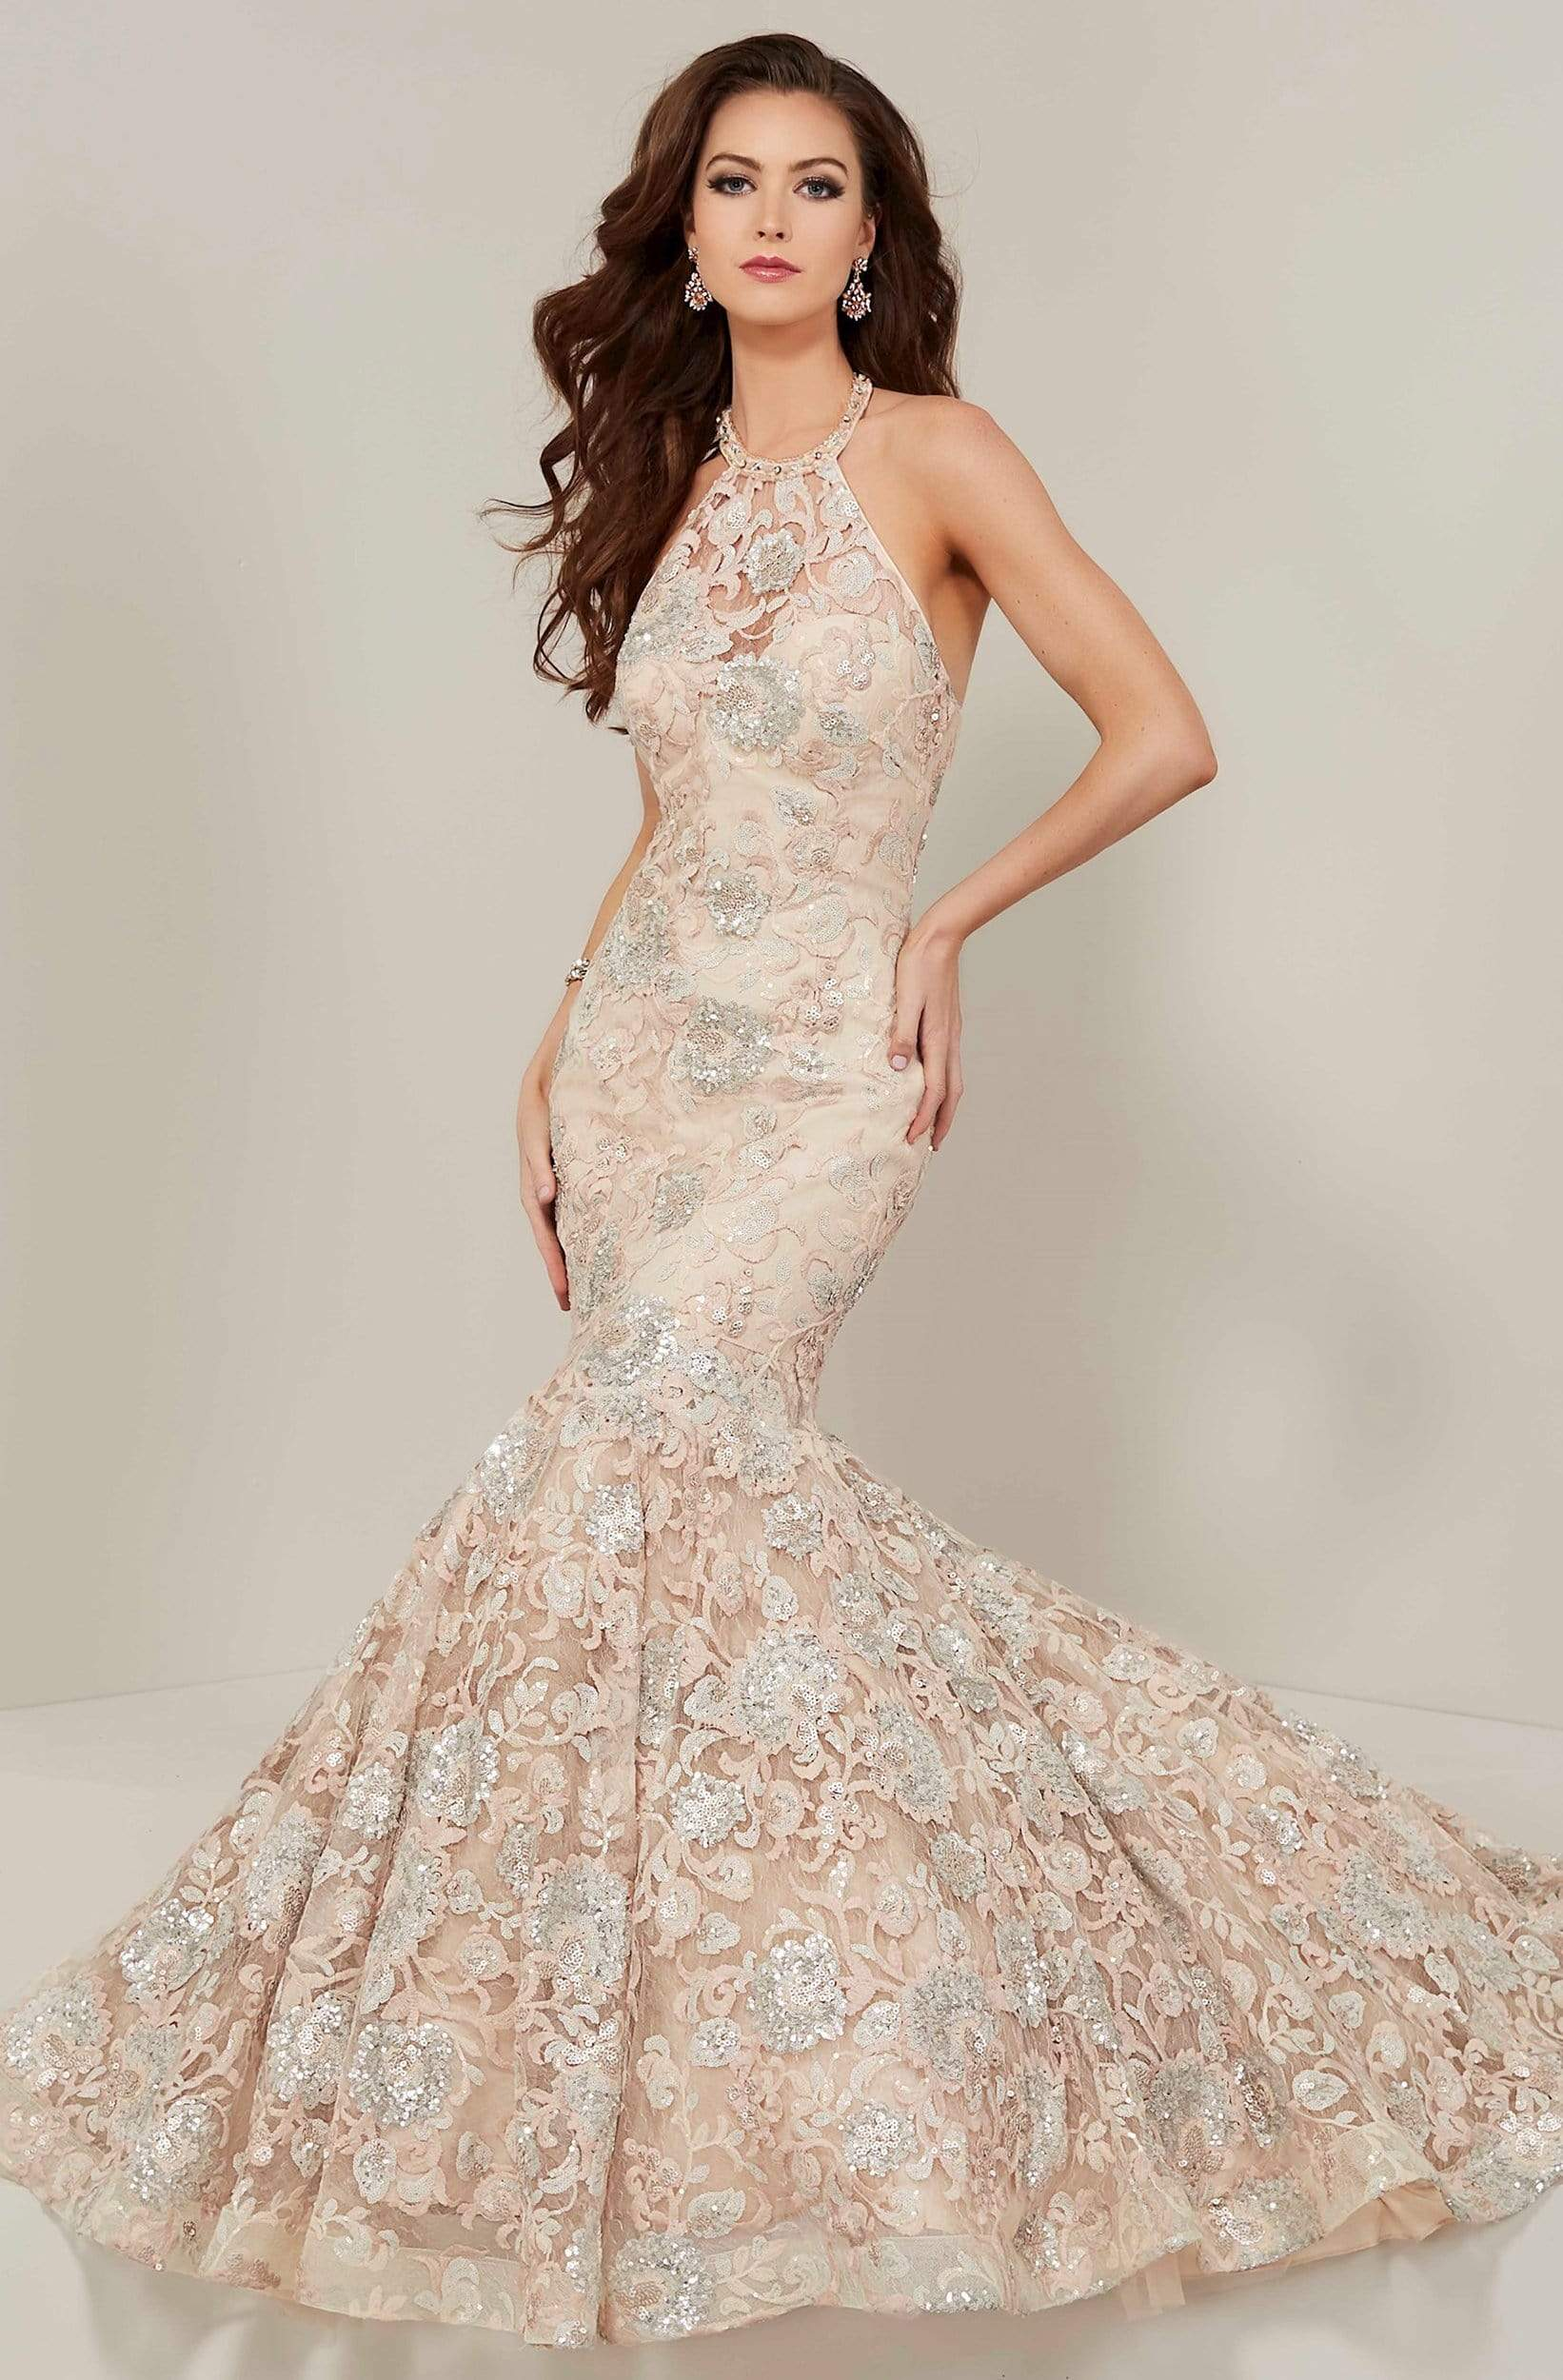 Tiffany Designs - 16366 Floral Sequined Illusion Halter Mermaid Gown from Tiffany Designs